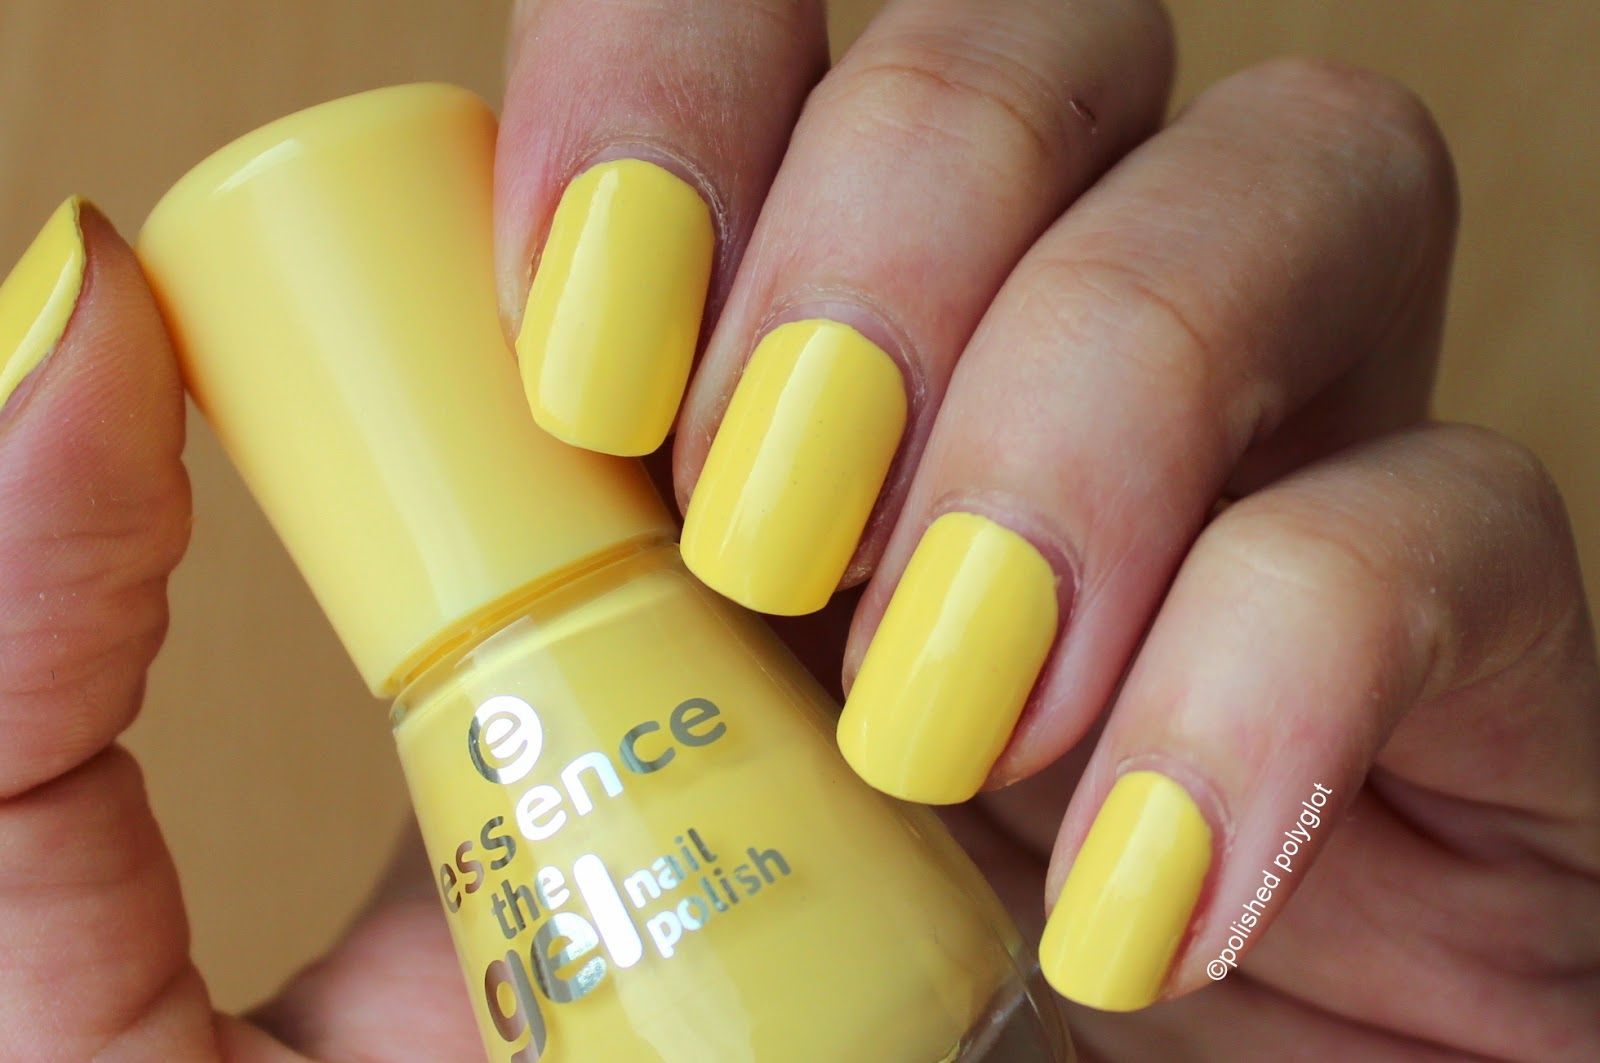 Nails inc gel nail colors and gel nail polish on pinterest - Gel Nail Polish Comes In Different Colors And Some Types Can Be Mixed Together To Make